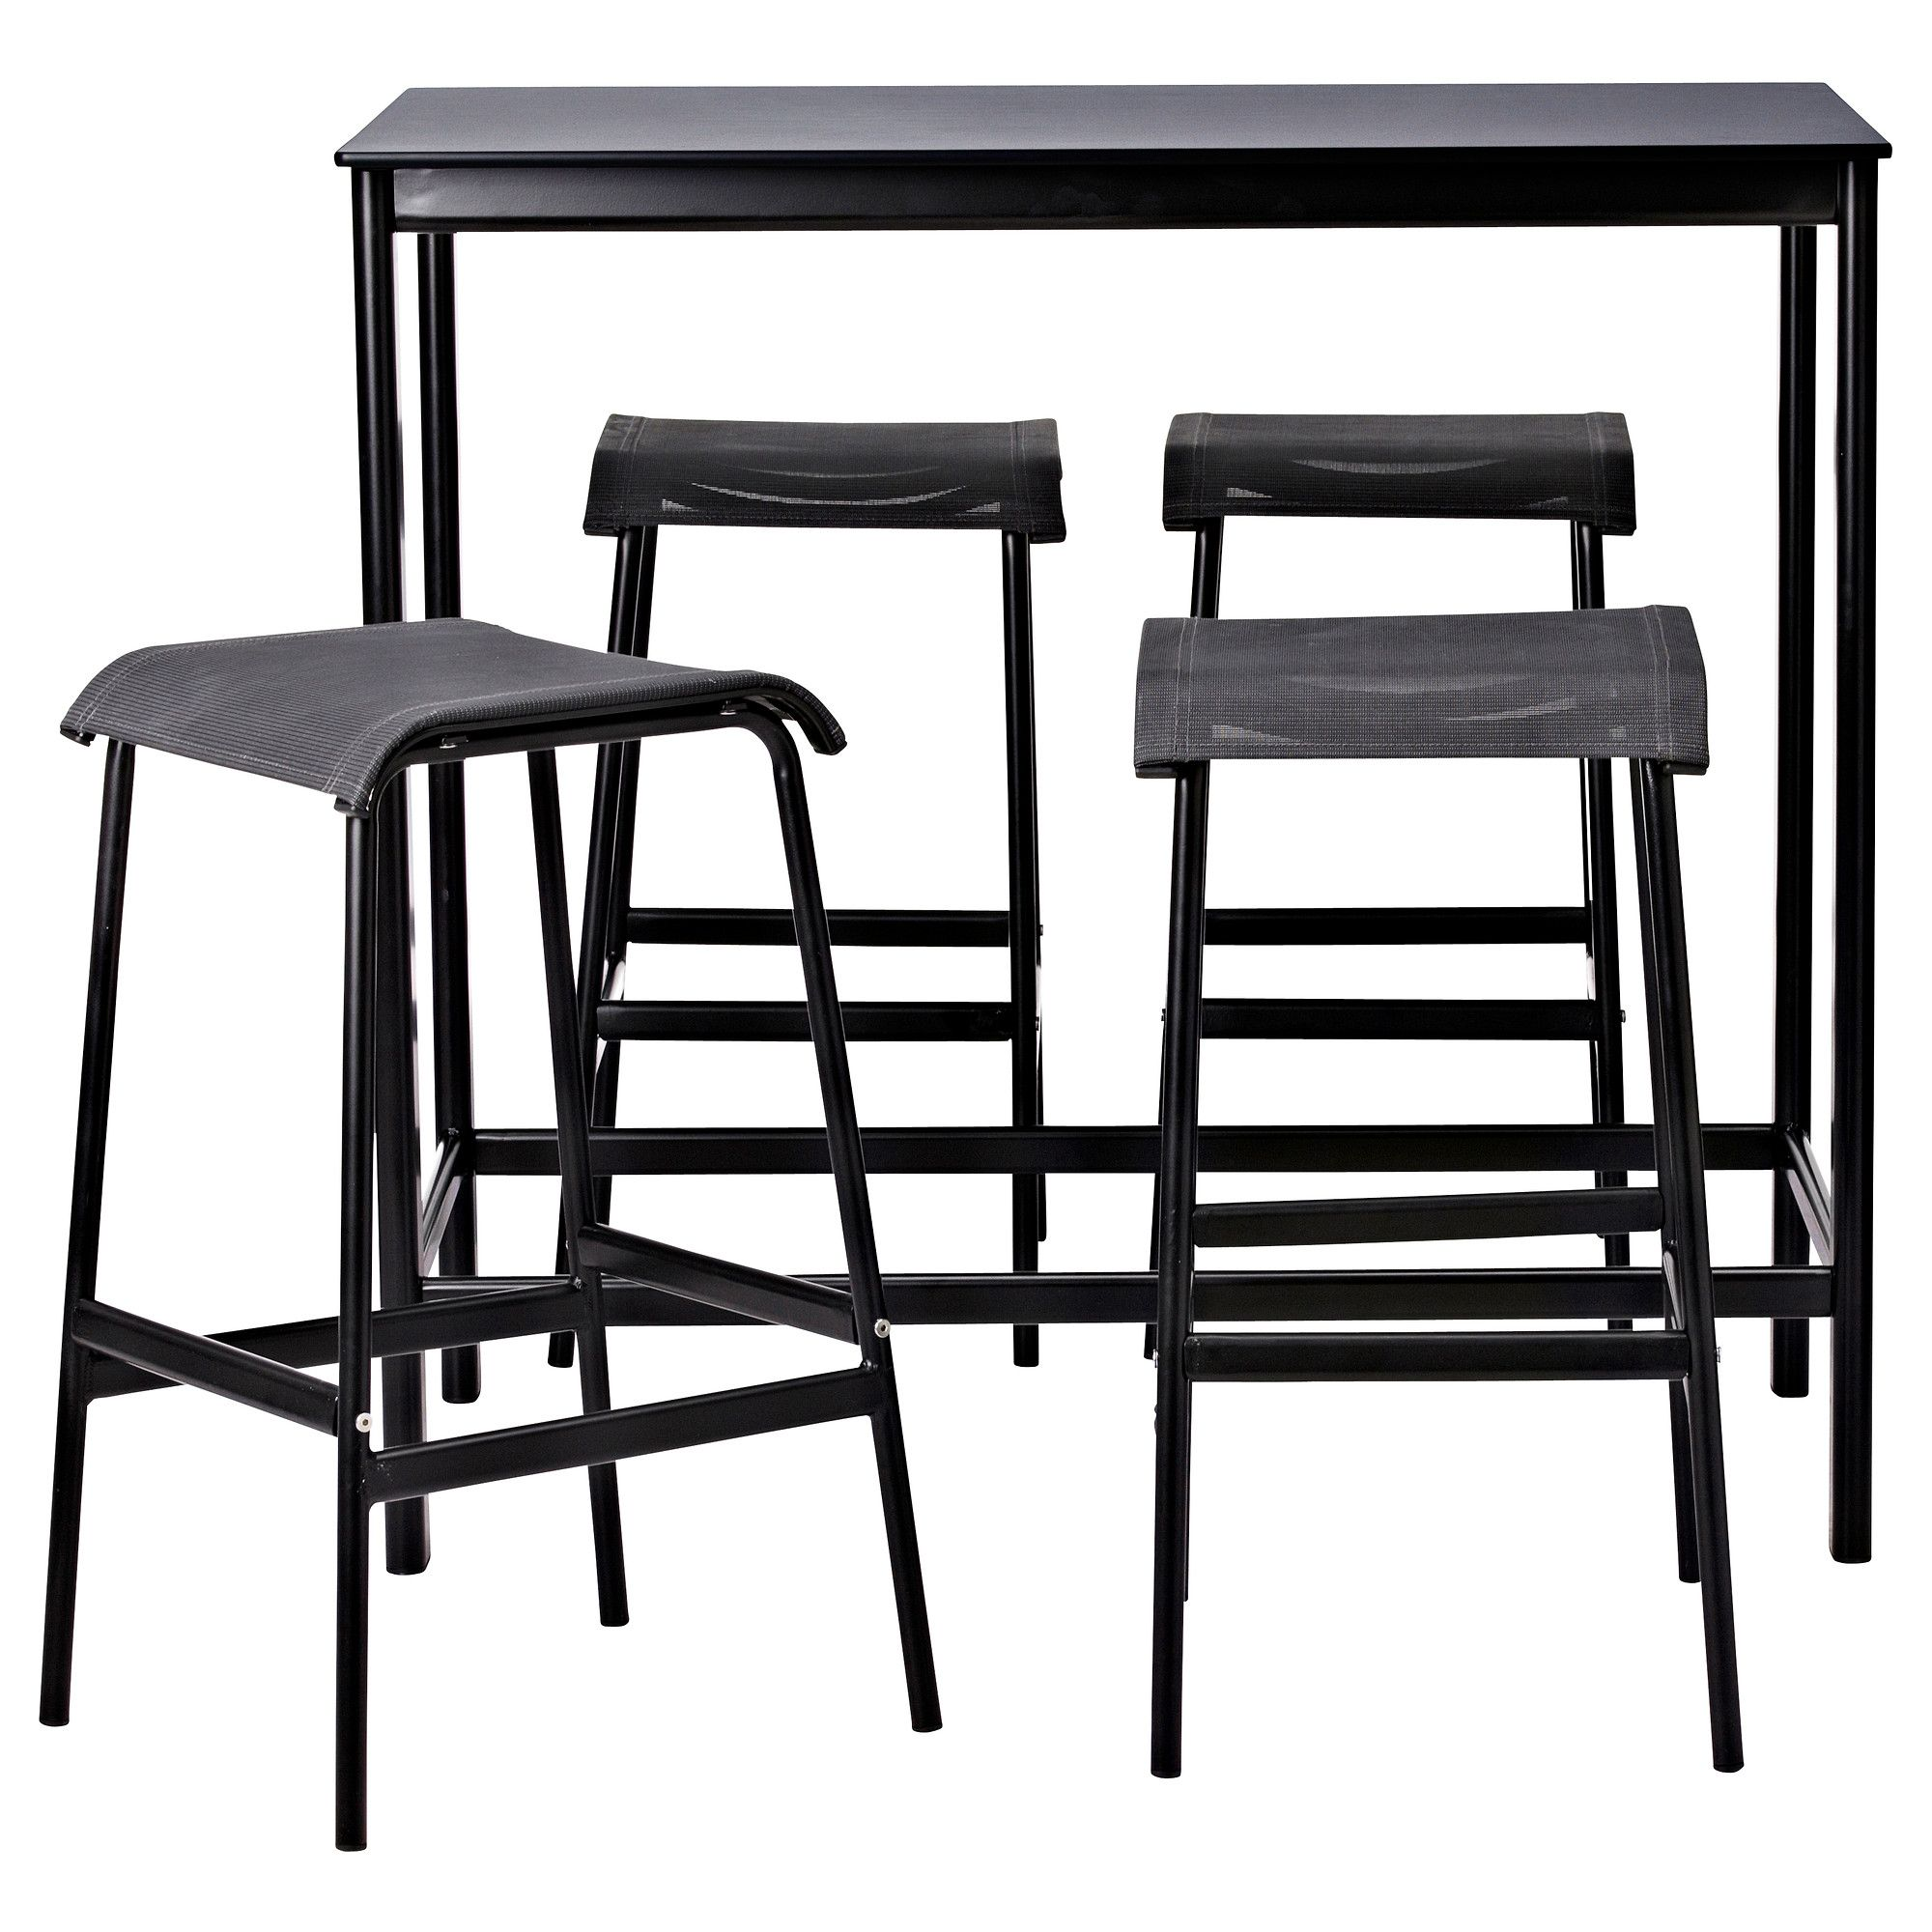 Garpen bar table and 4 bar stools ikea bar stool leg frame garpen bar table and 4 bar stools ikea bar stool leg frame seat aluminum polyester powder coatingfoot polyamide fabric total composition 100 watchthetrailerfo